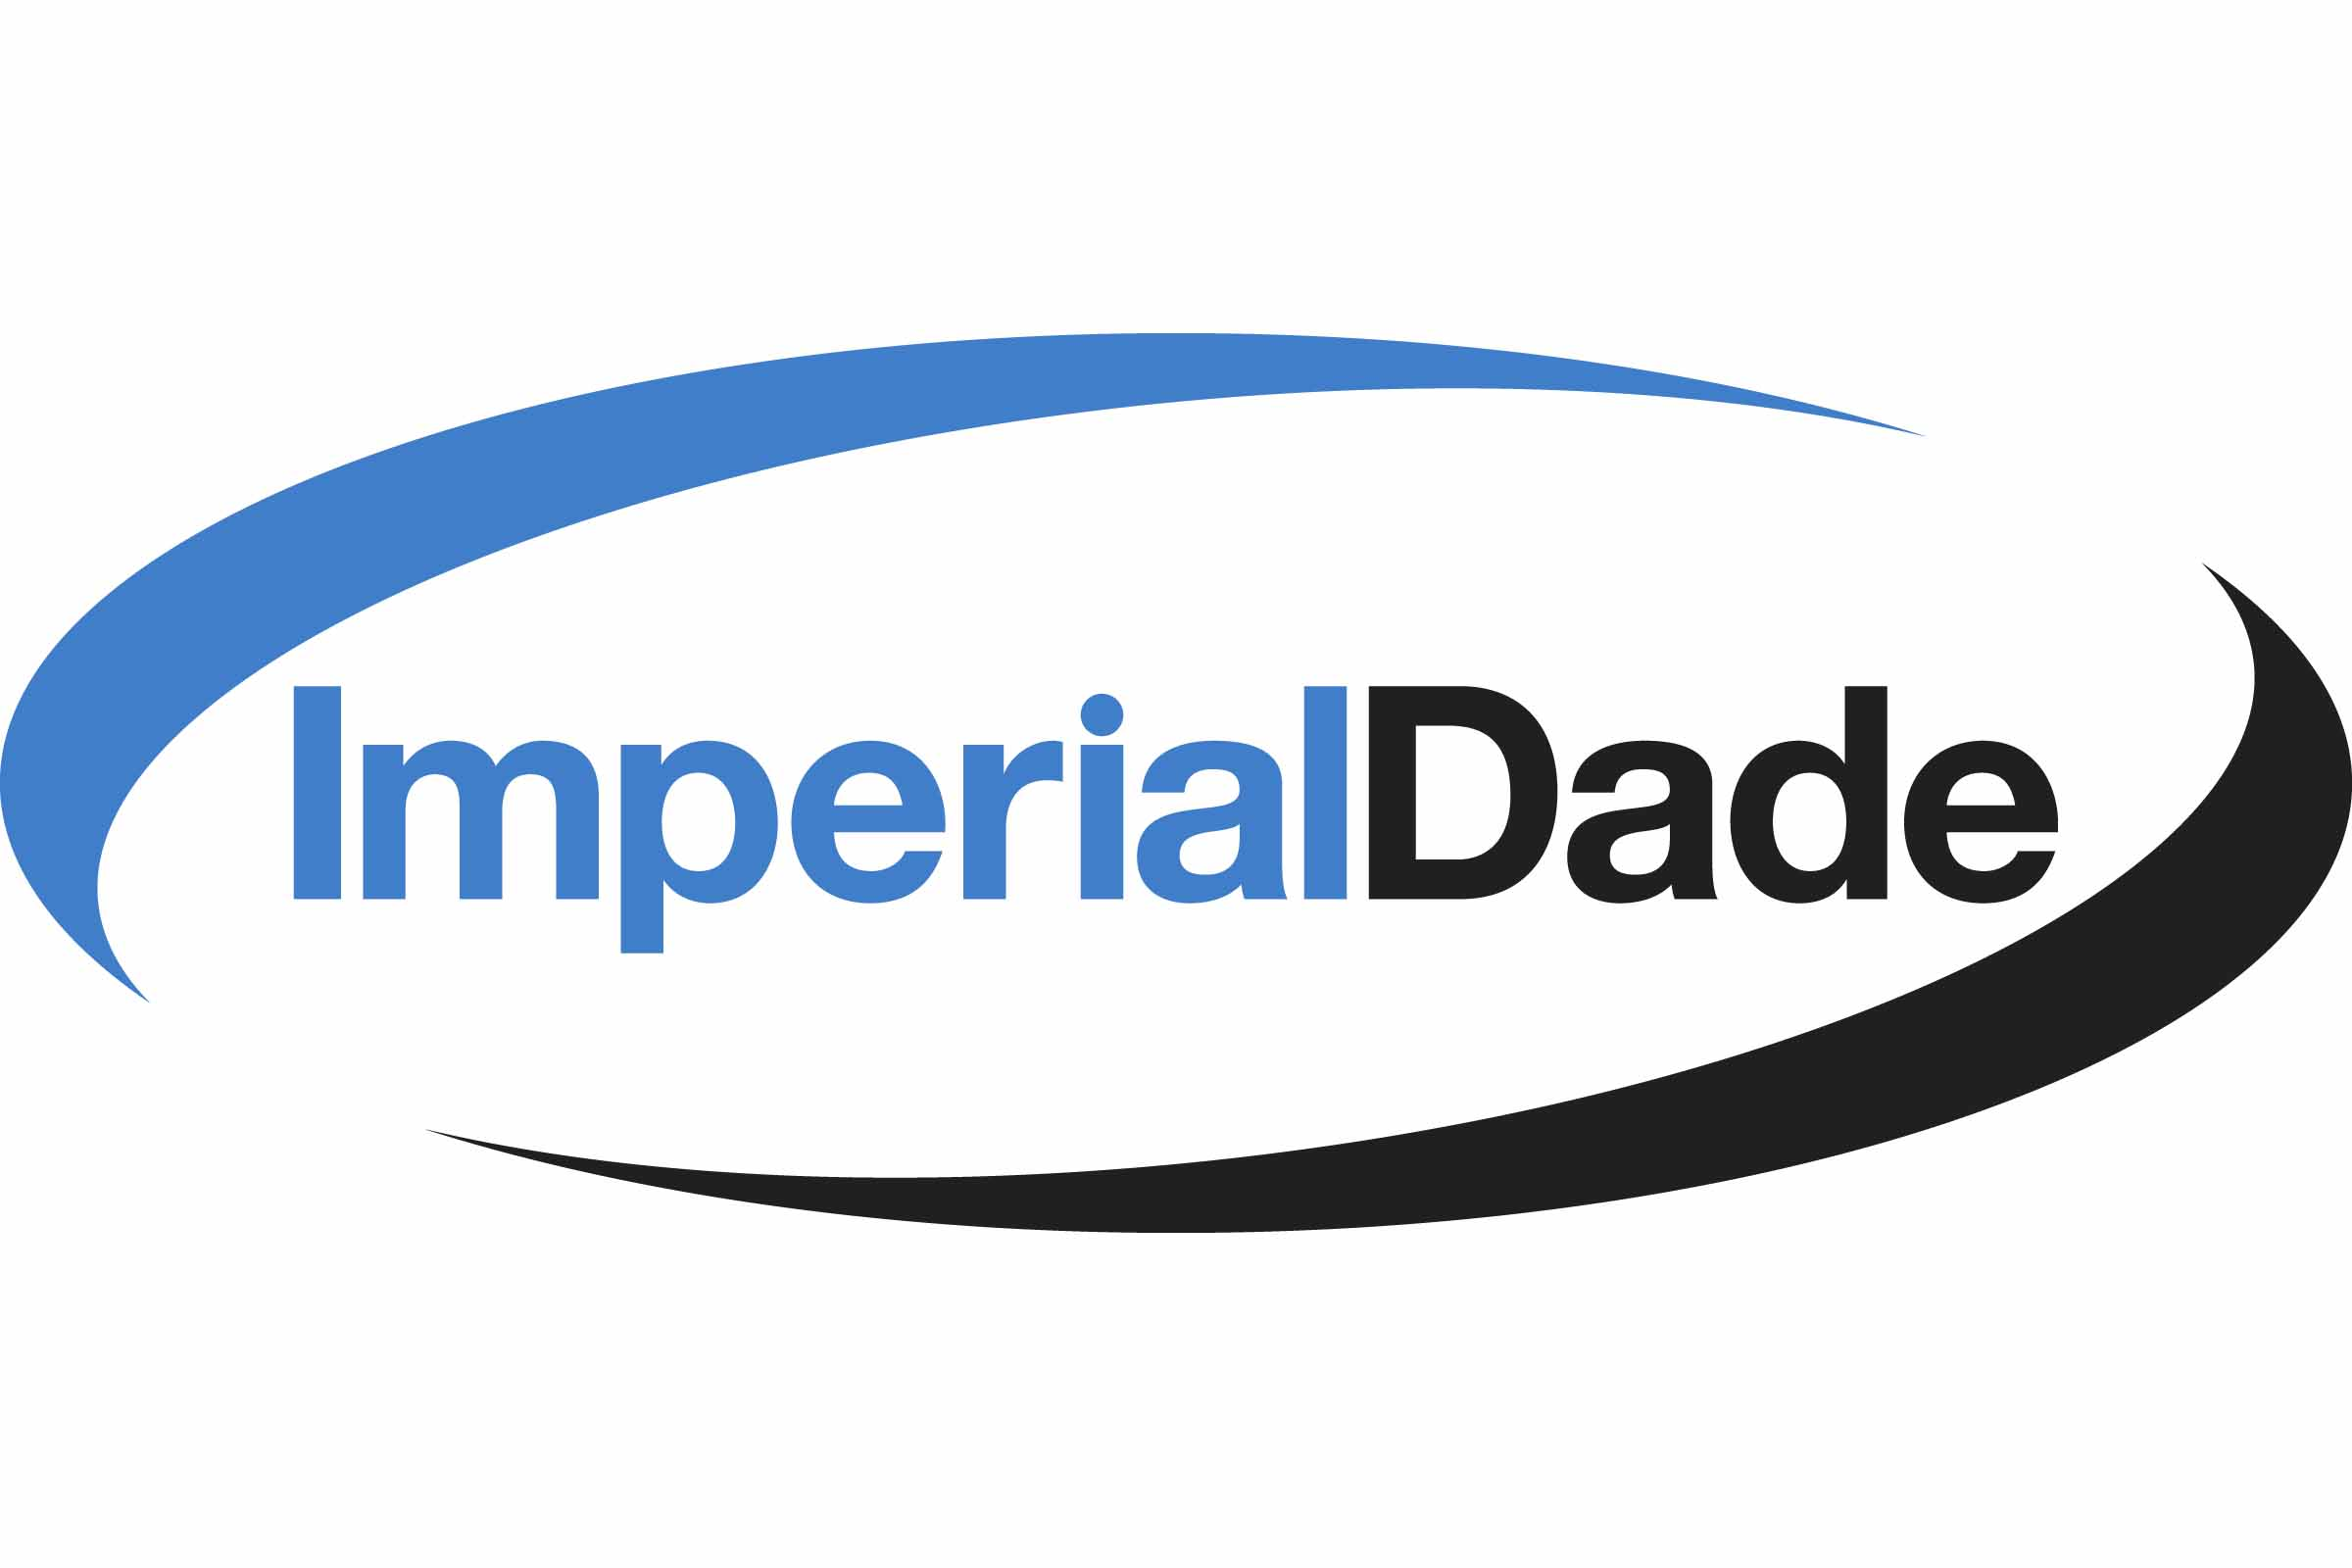 Imperial Dade to be Acquired by Bain Capital Private Equity